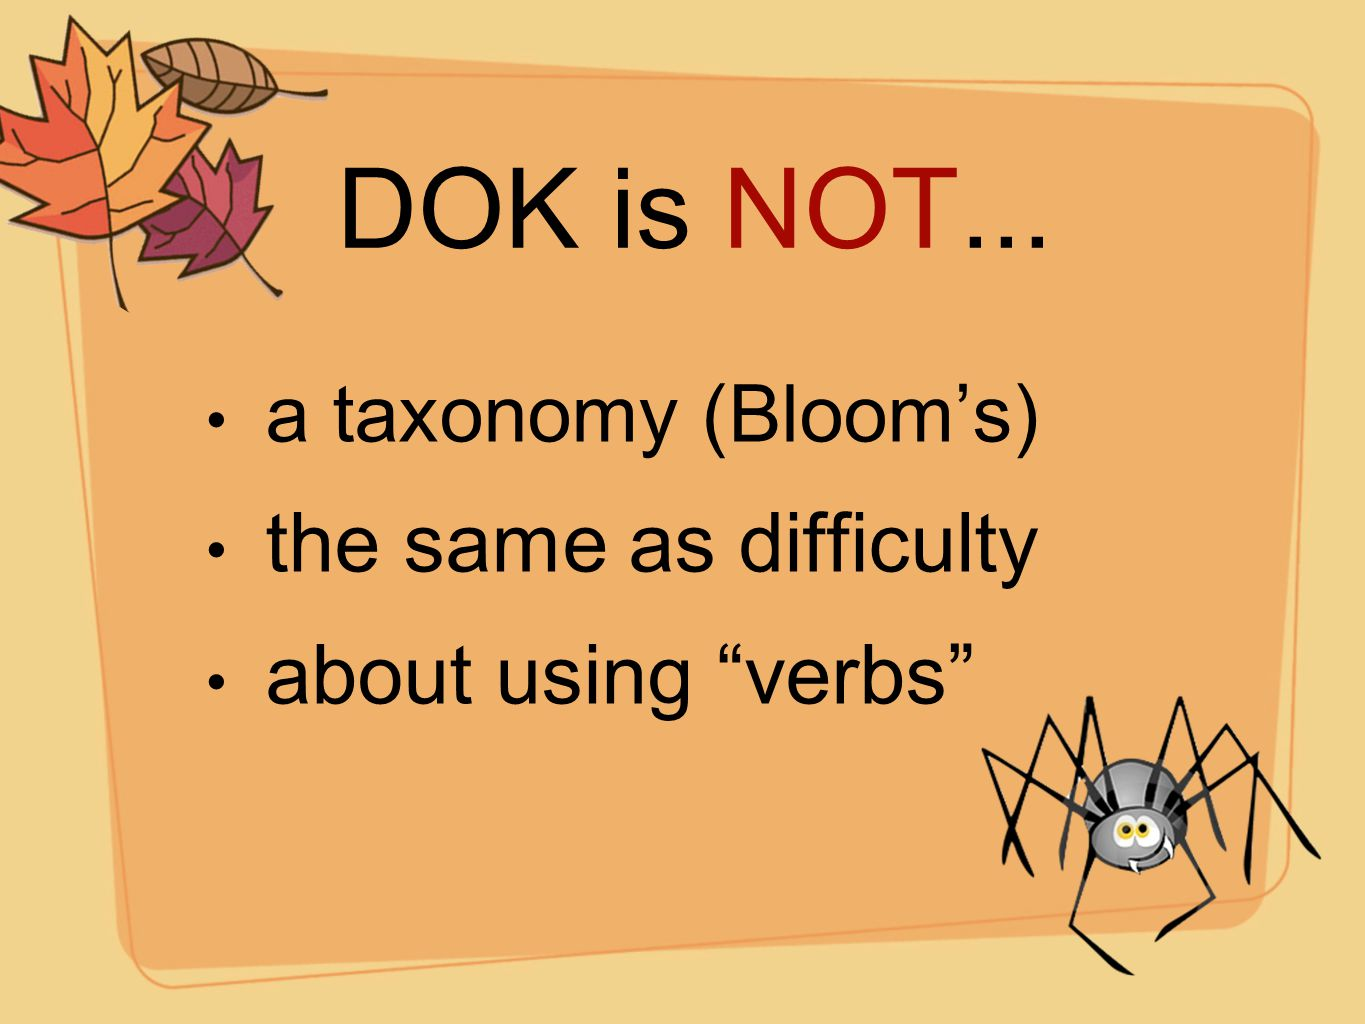 DOK is NOT... the same as difficulty about using verbs